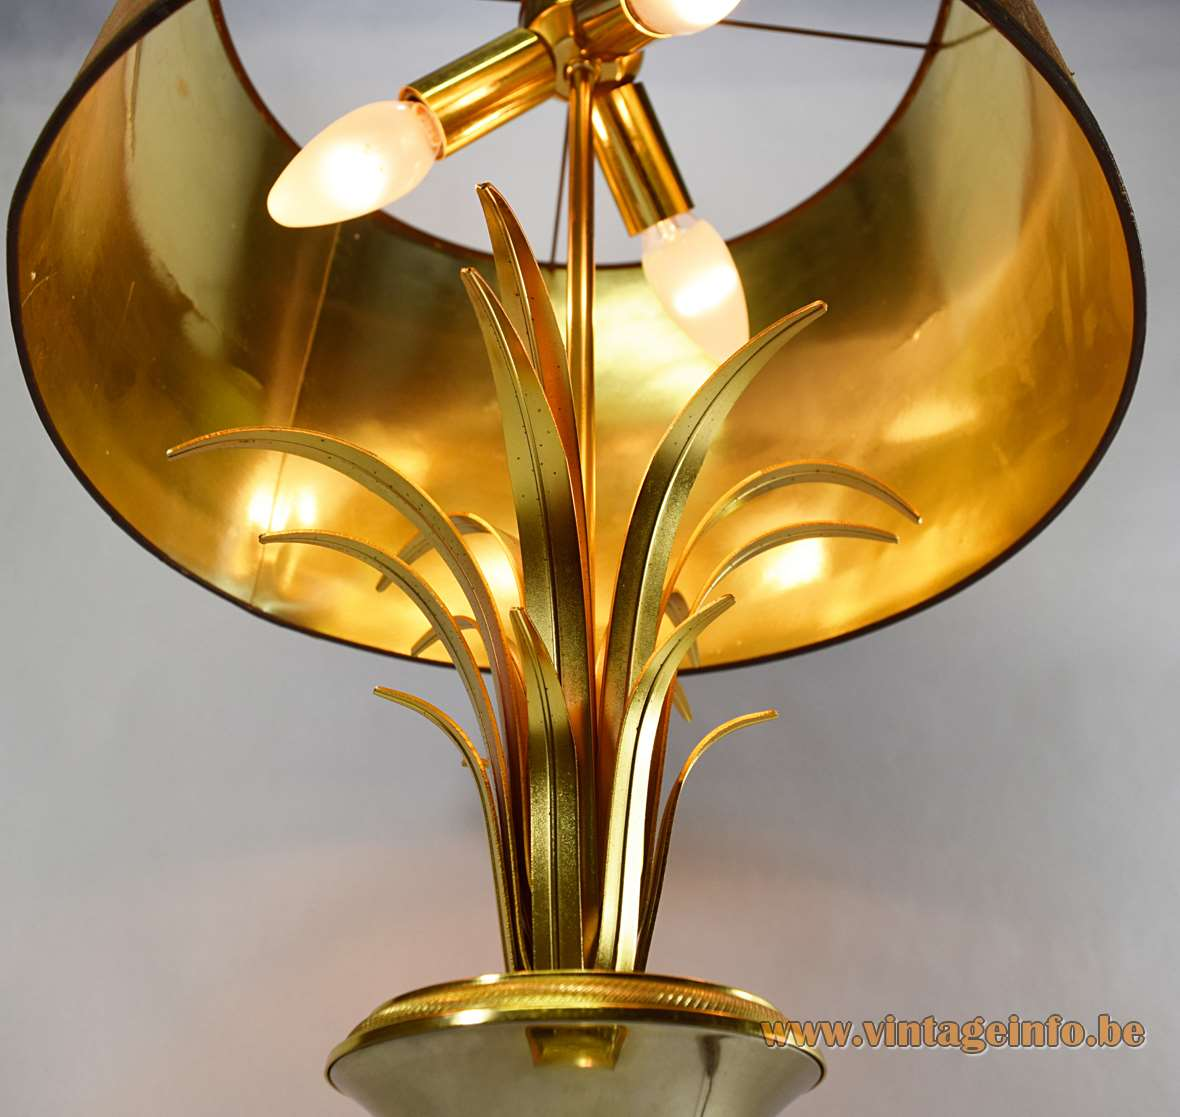 Boulanger table lamps reed palm urn square base chrome brass fabric lampshade 3 E14 sockets 1960s 1970s Hollywood Regency